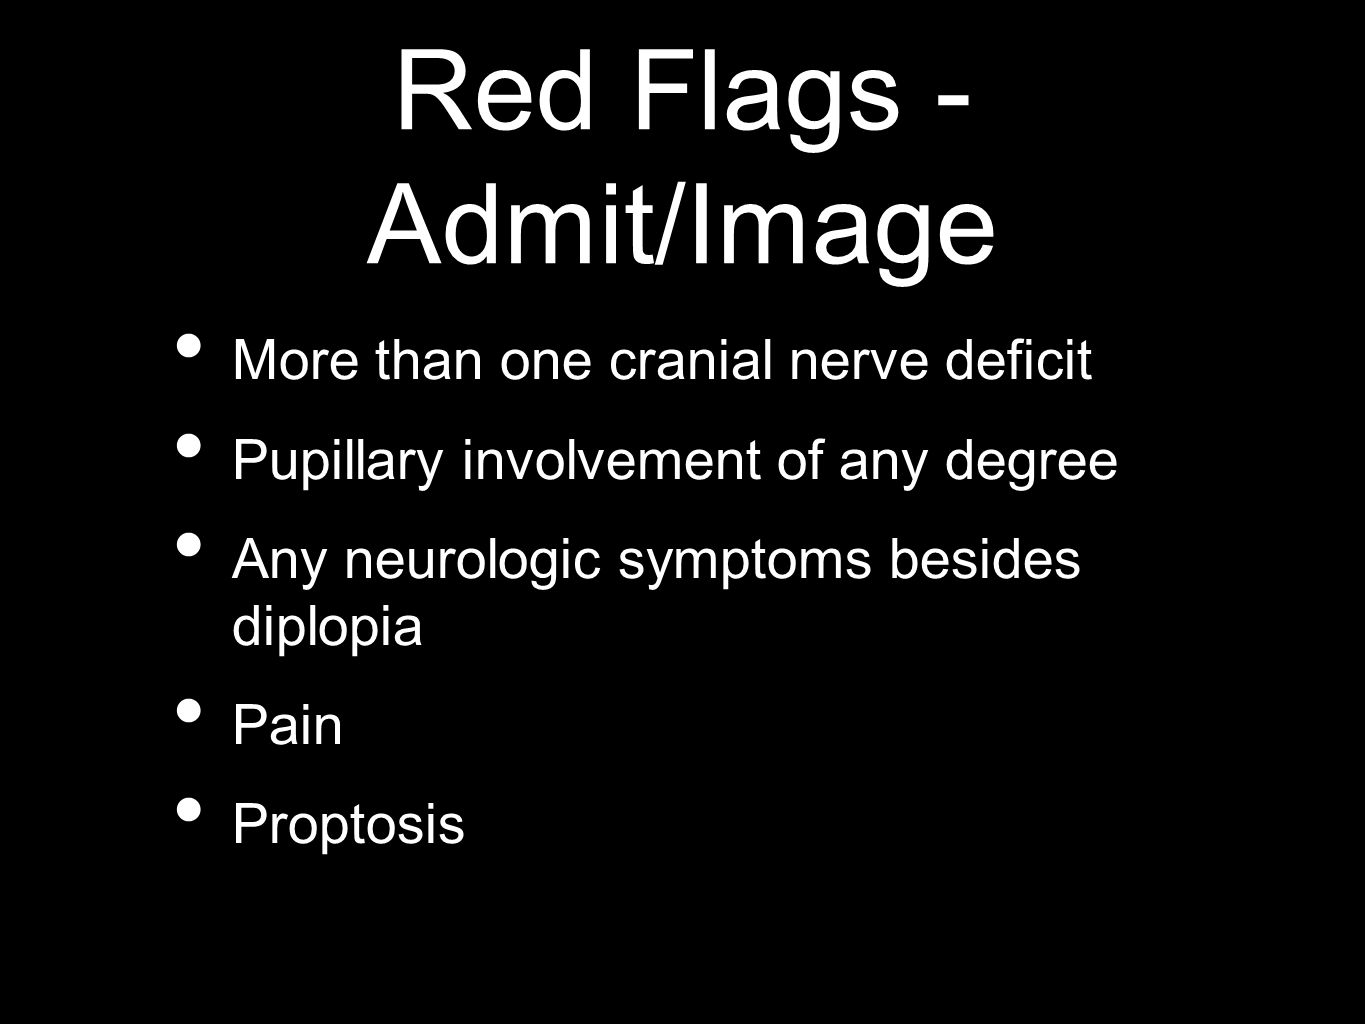 Red Flags - Admit/Image More than one cranial nerve deficit Pupillary involvement of any degree Any neurologic symptoms besides diplopia Pain Proptosi